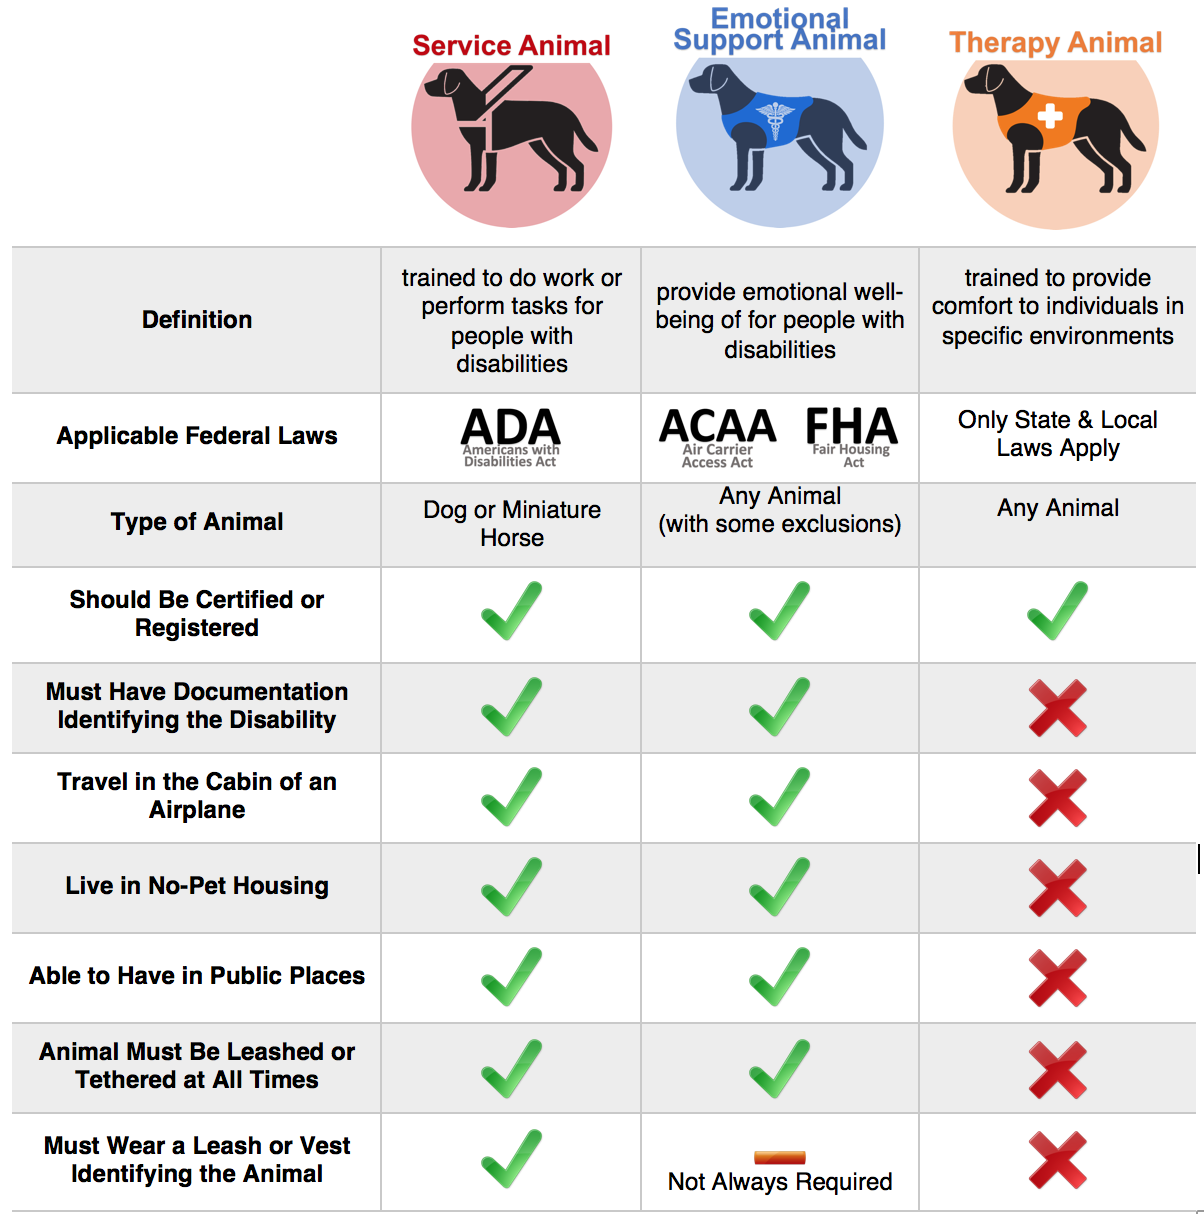 Emotional Support Animals Information For Landlords Emotional Support Animal Therapy Dogs Therapy Dog Training